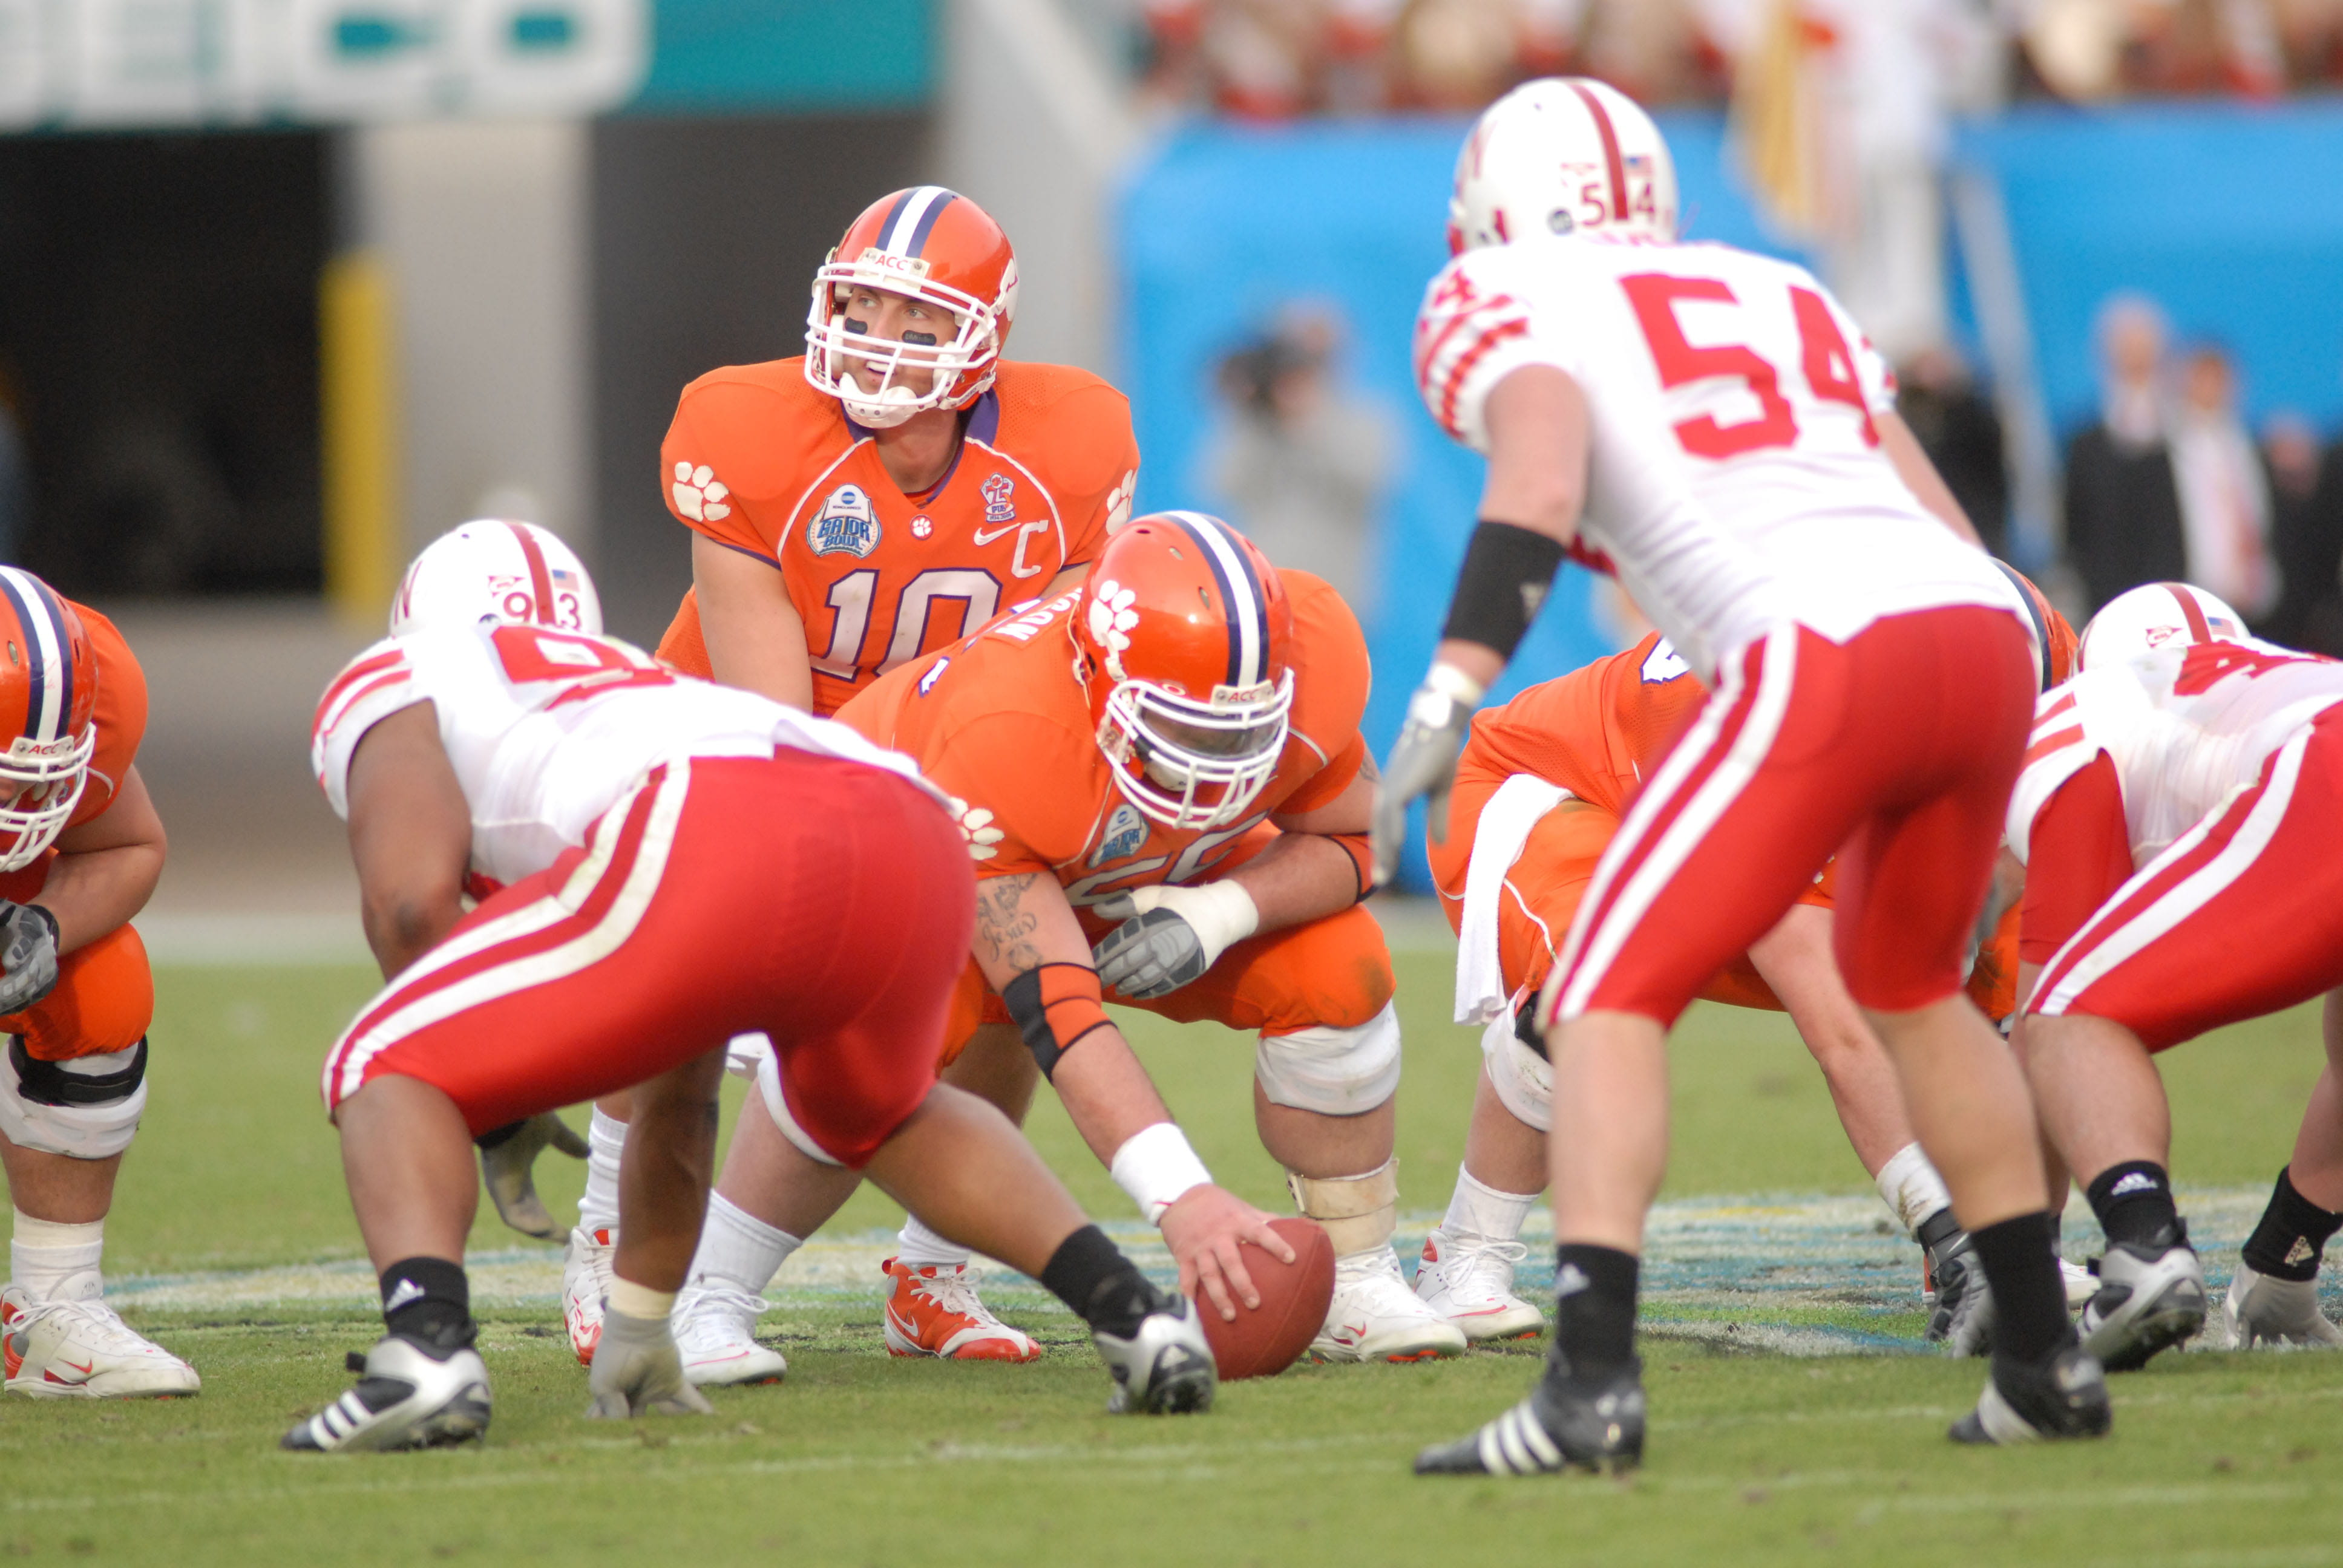 Former Clemson Tiger quarterback Cullen Harper takes a snap during a game in the 2008 season.